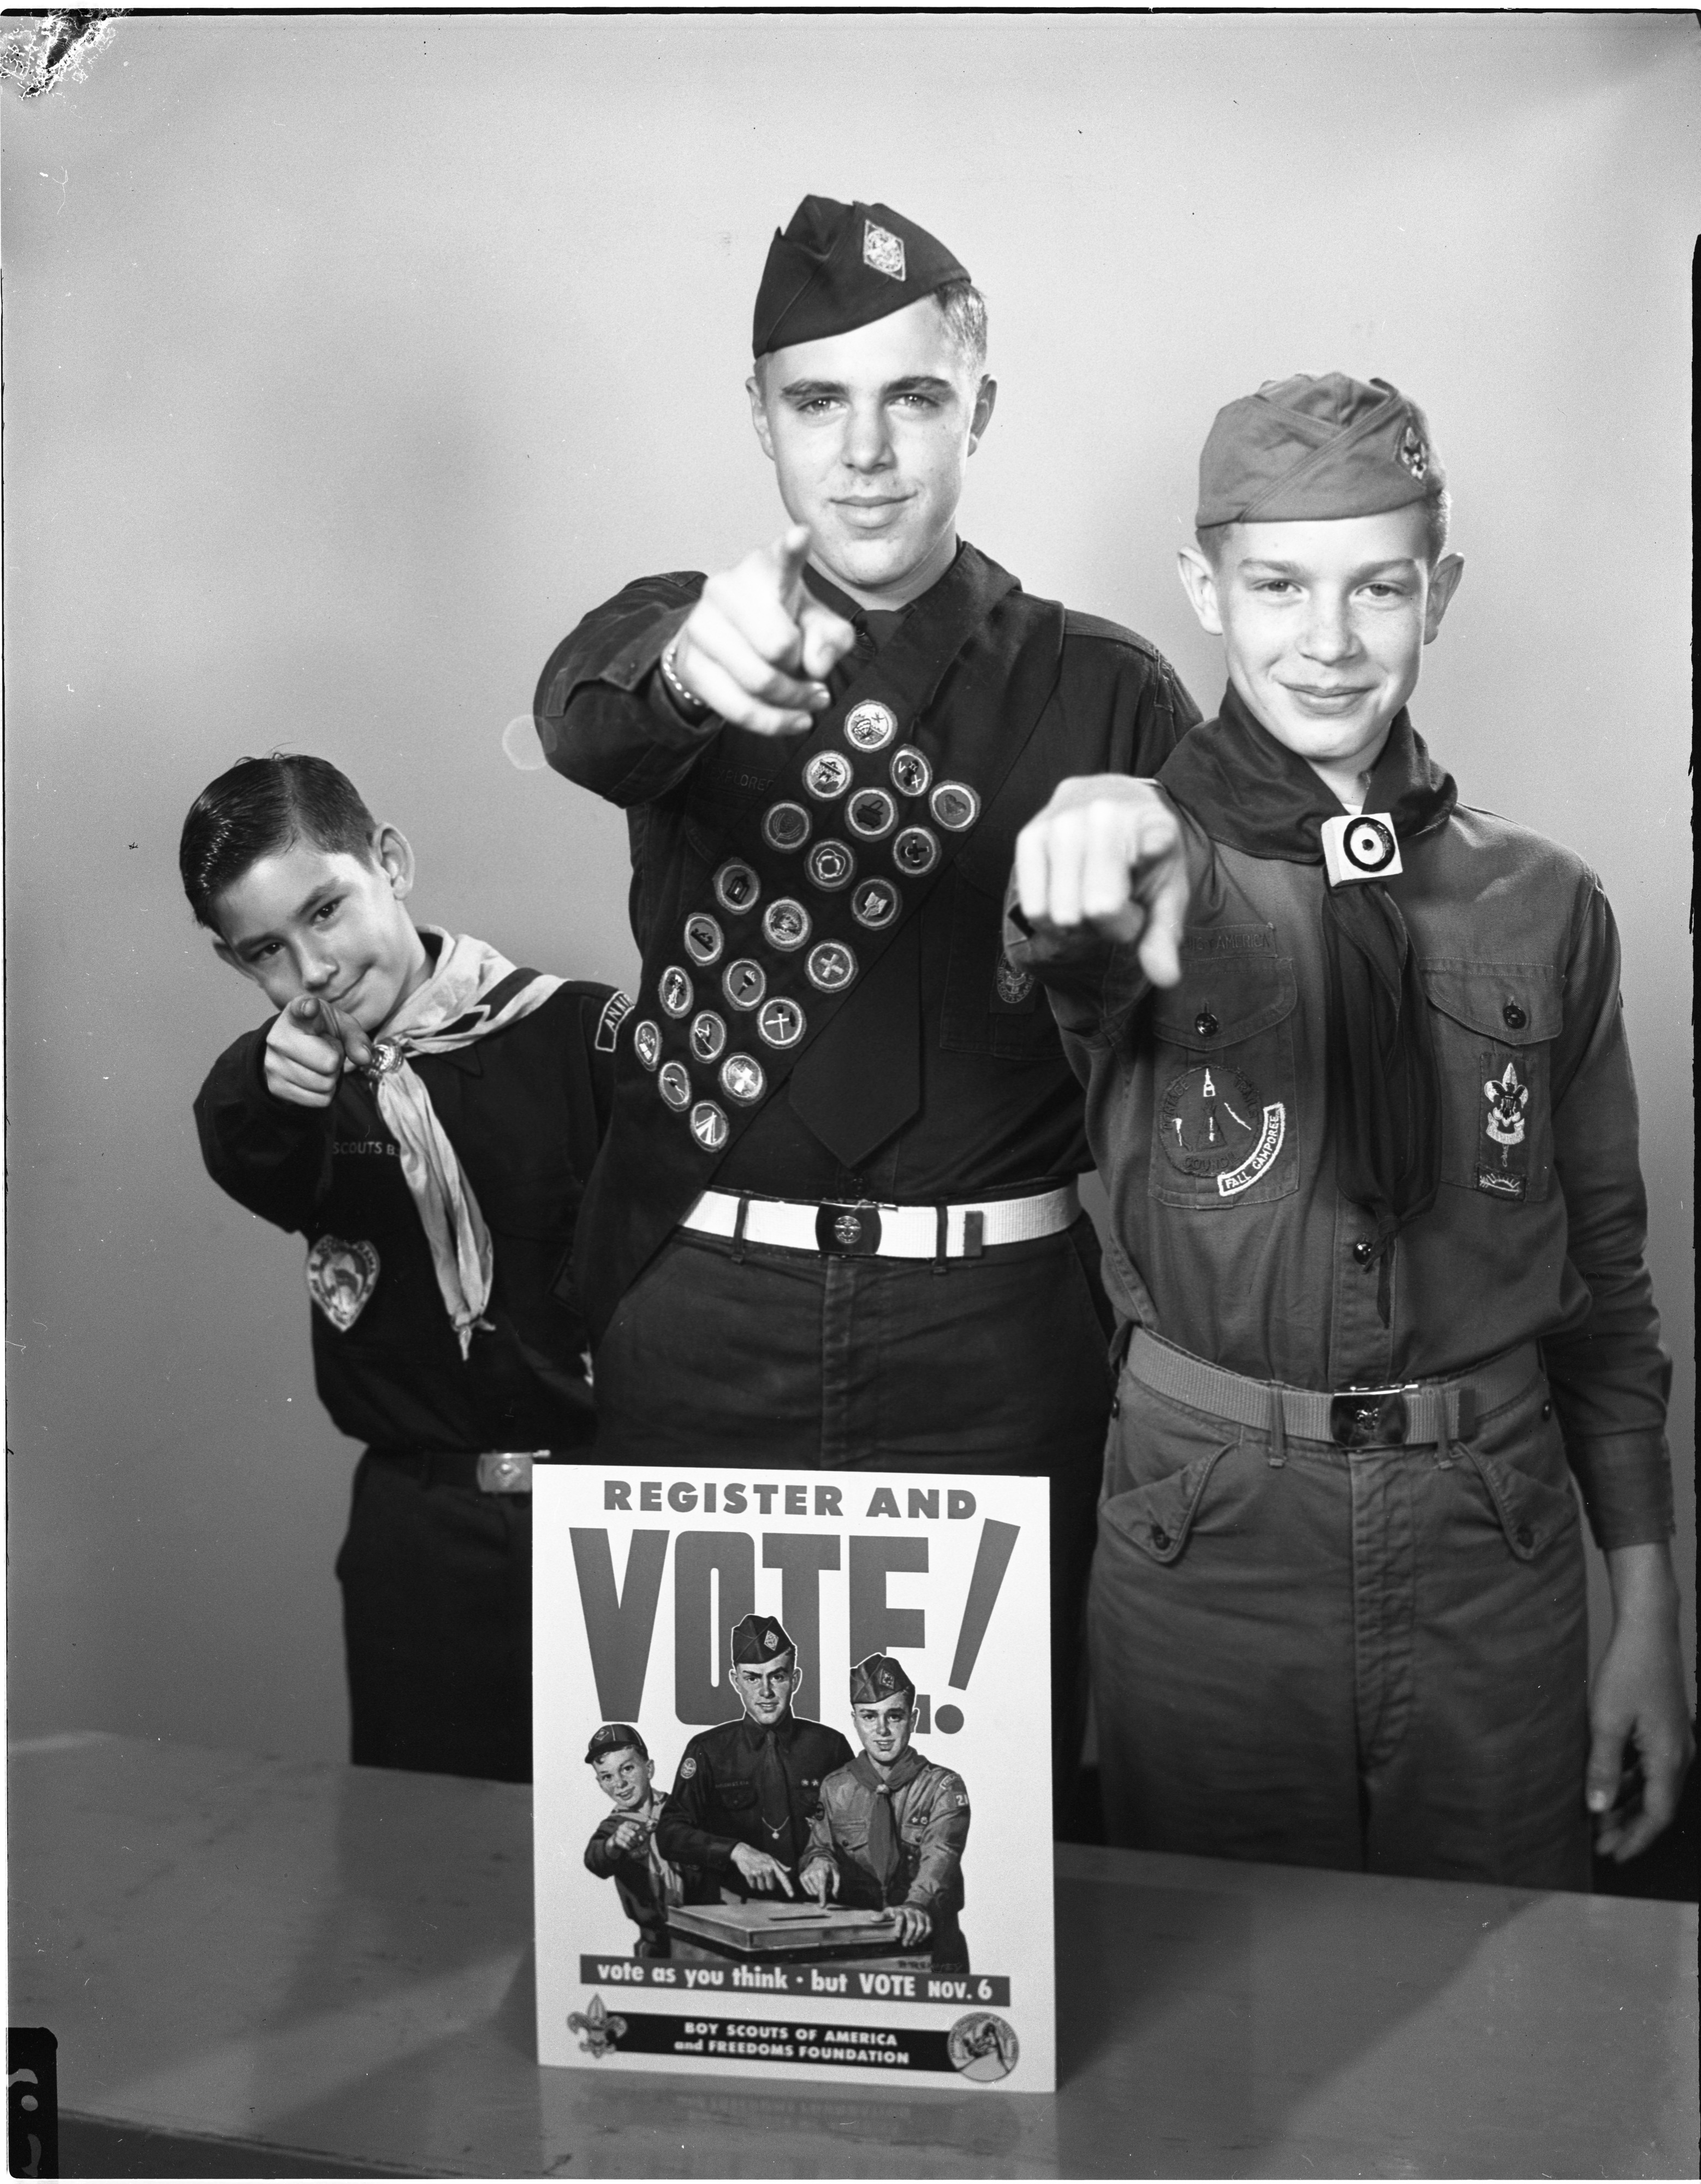 Boy Scouts Re-Enact Poster Urging Residents To Vote, October 1956 image